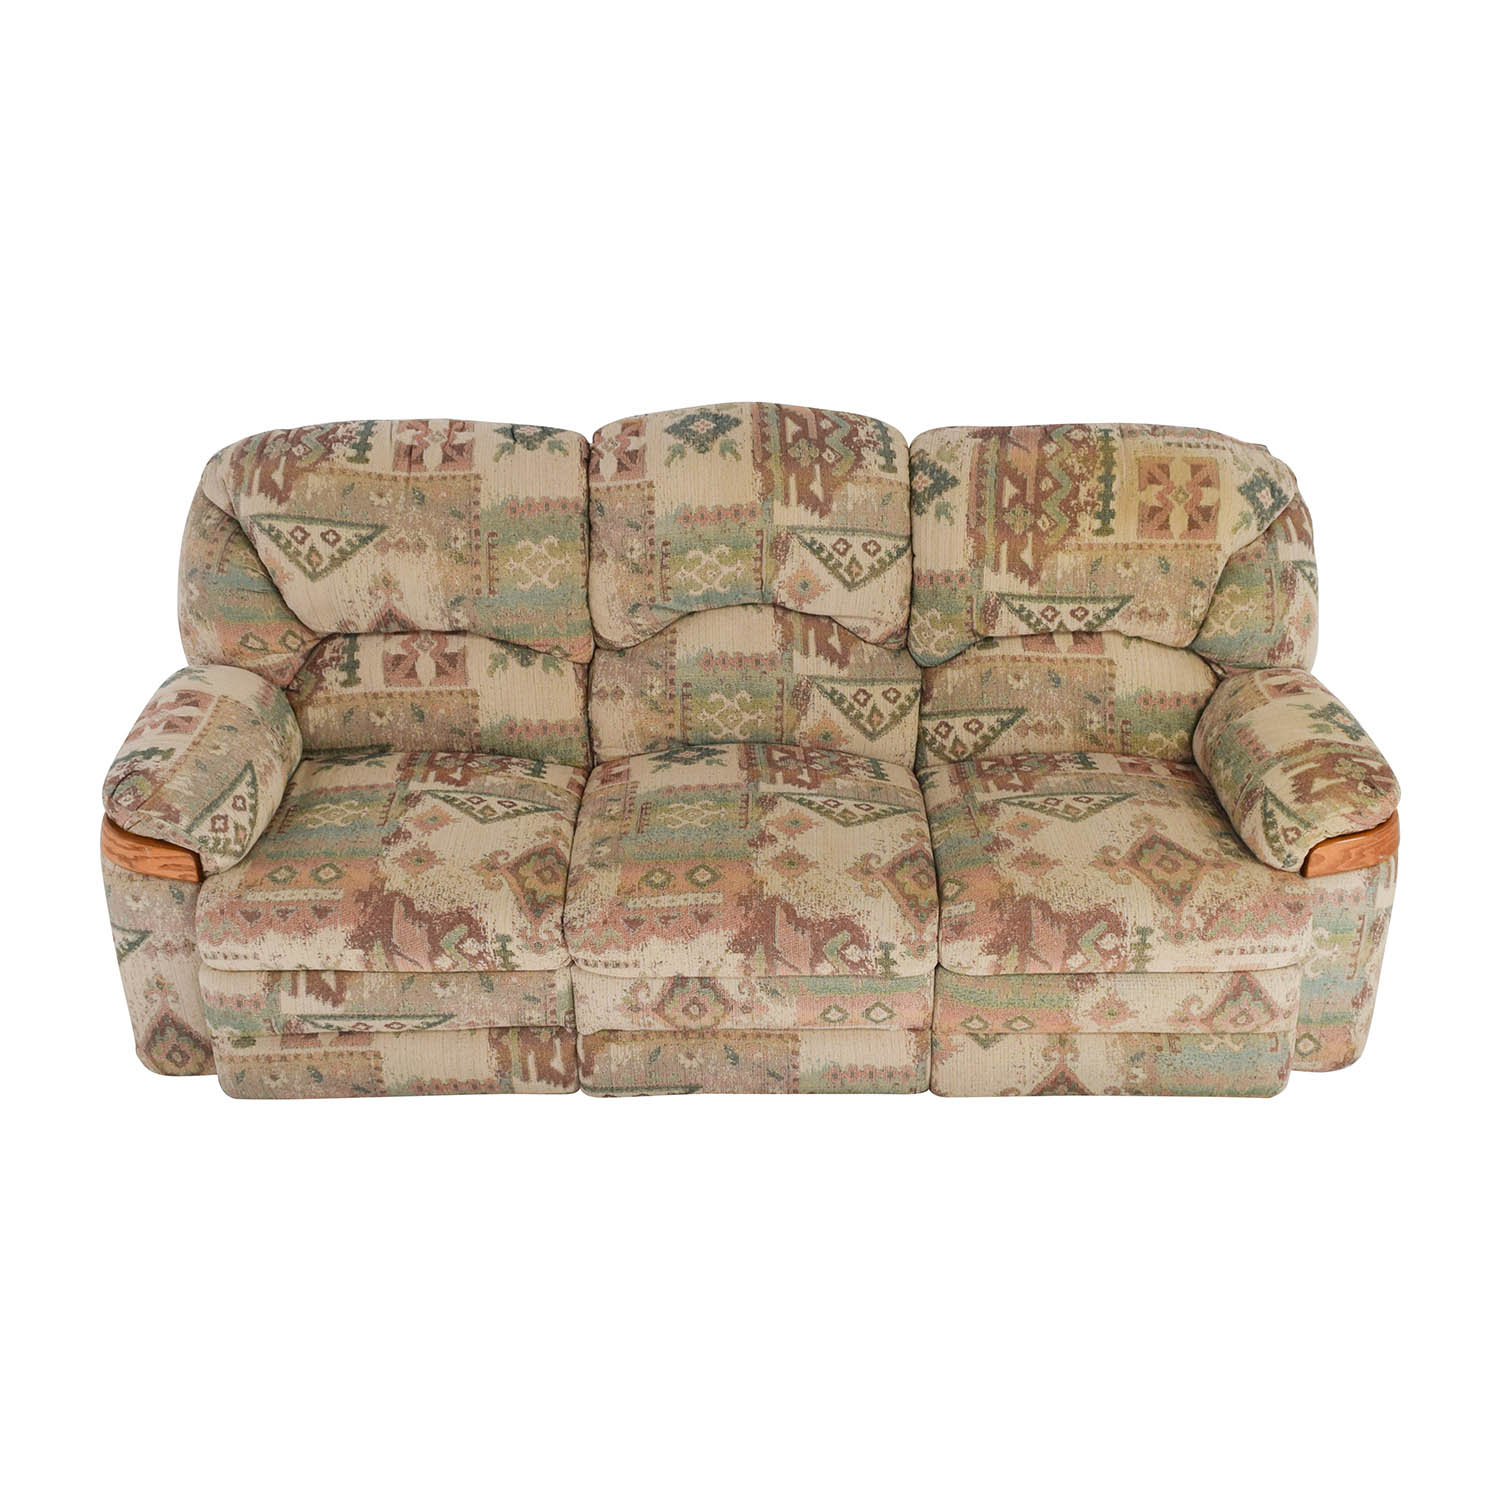 Patterned Fabric Recliner Sofa on sale